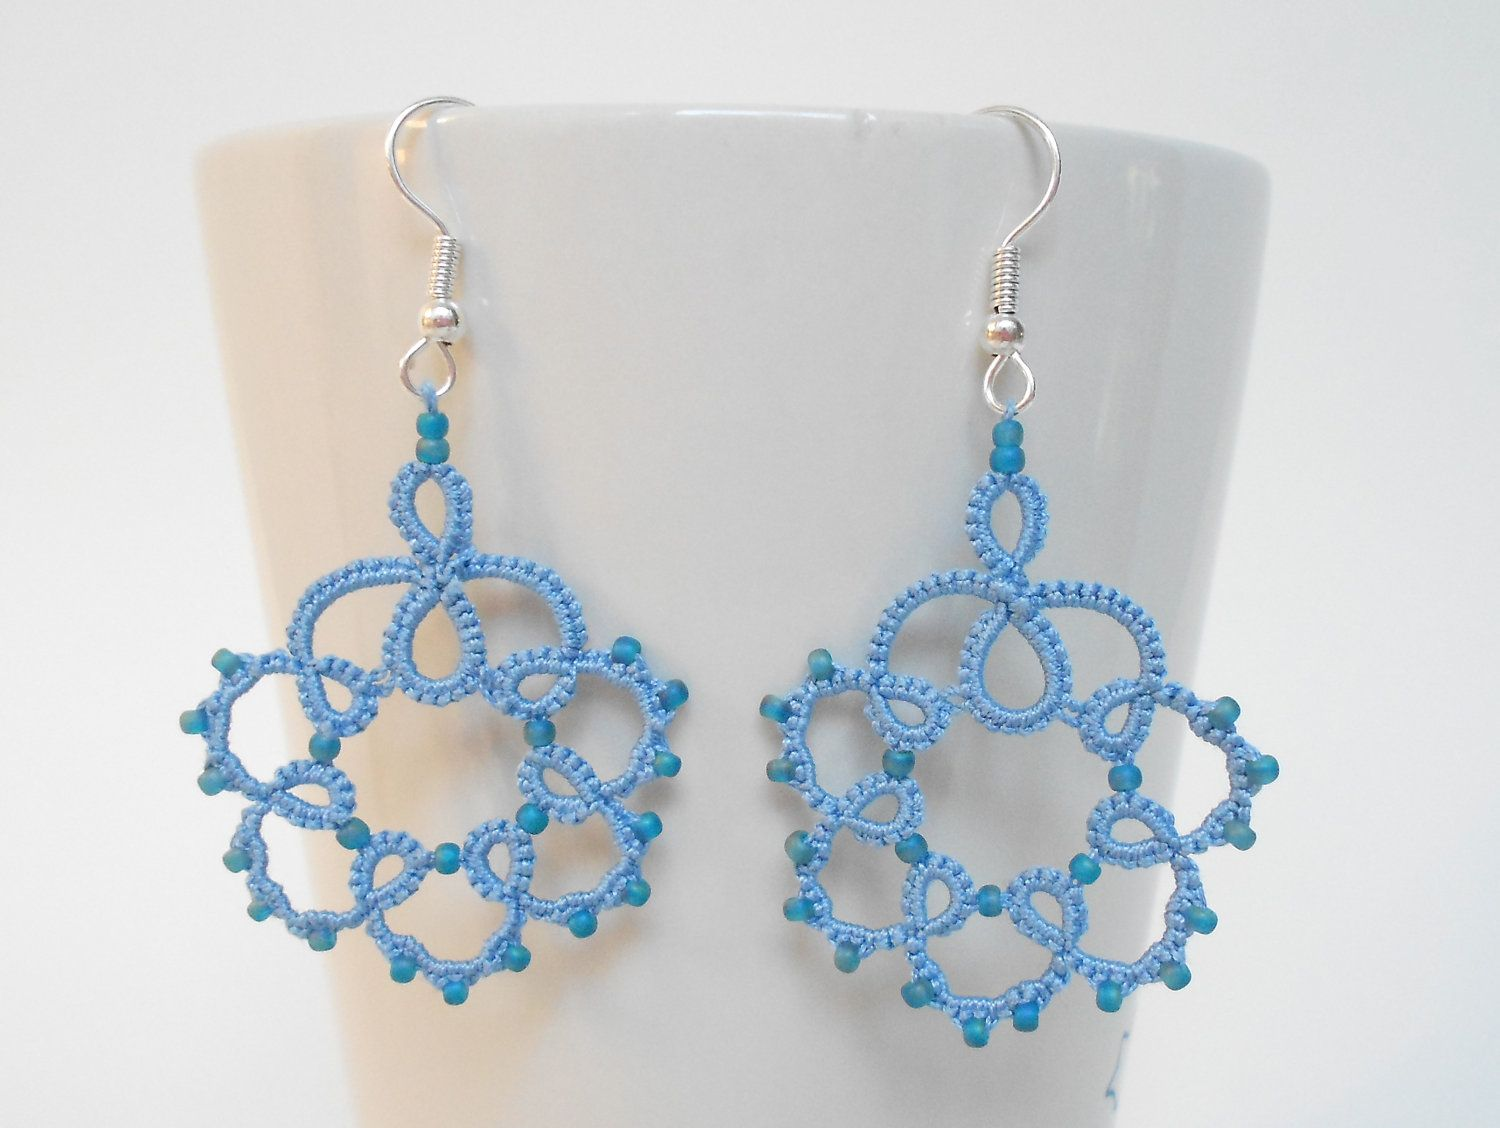 Sky blue tatted earrings with beads.